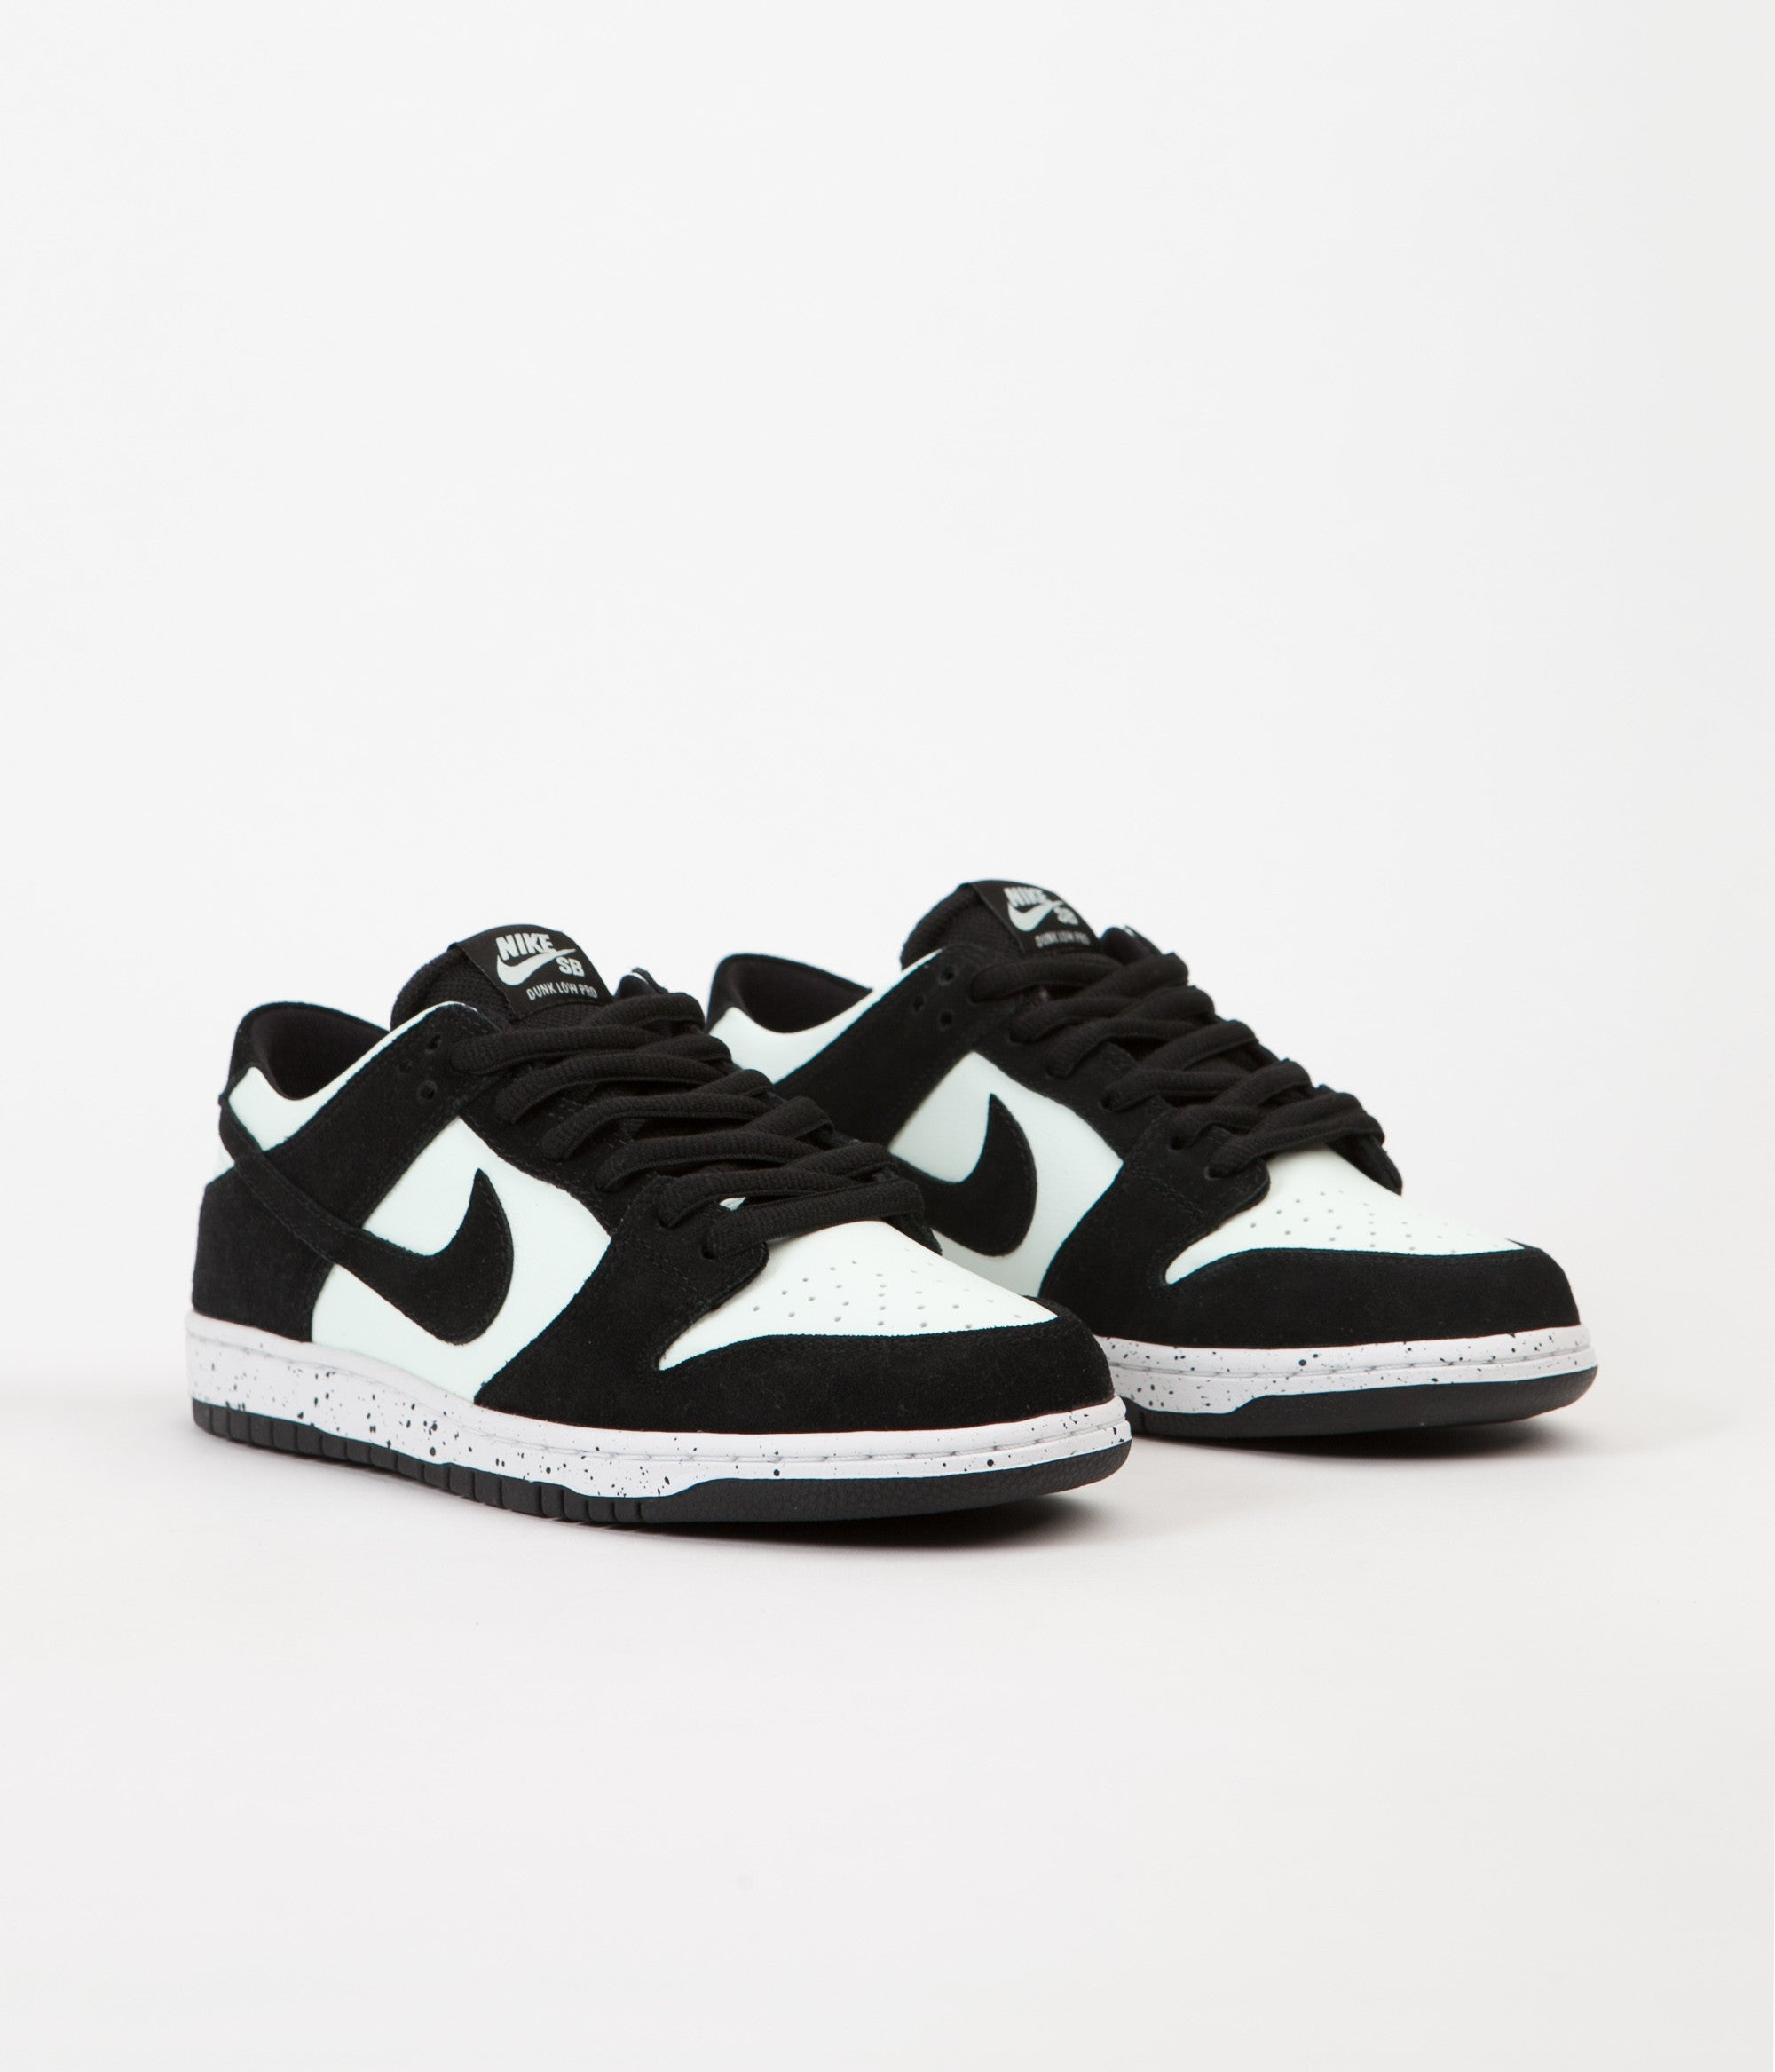 Buy Online Nike Sb Meaning Cheap Off67 Discounted